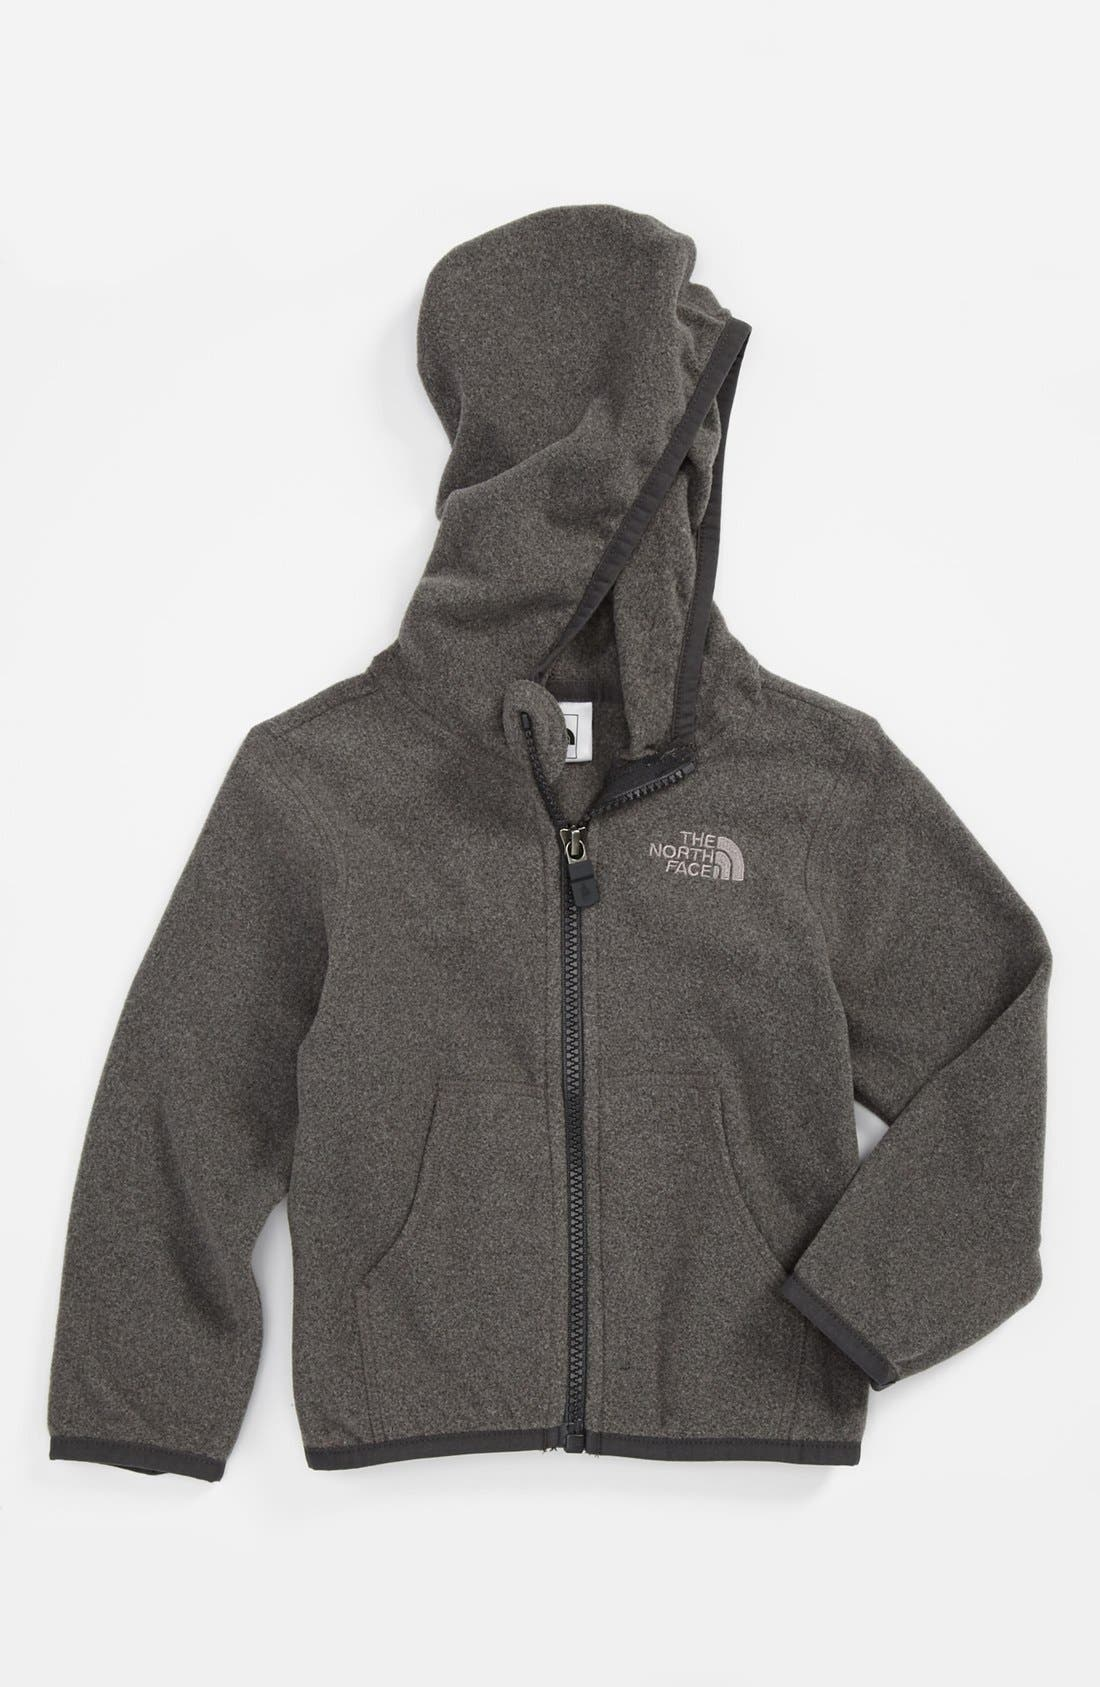 Main Image - The North Face 'Glacier' Full Zip Hoodie (Baby)